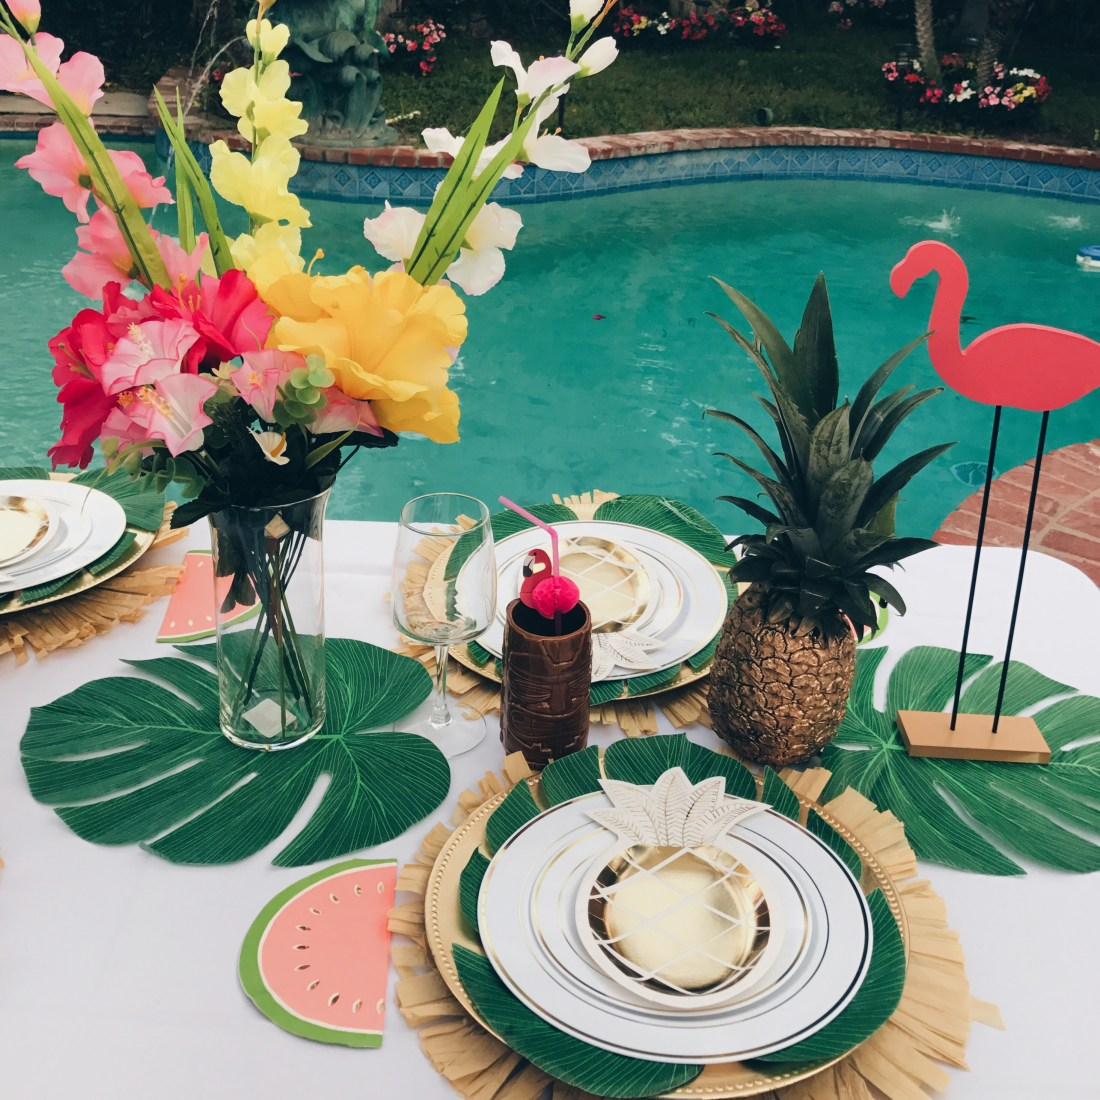 Bright Fun Glam Tropical Party Idea Table Setting Chic